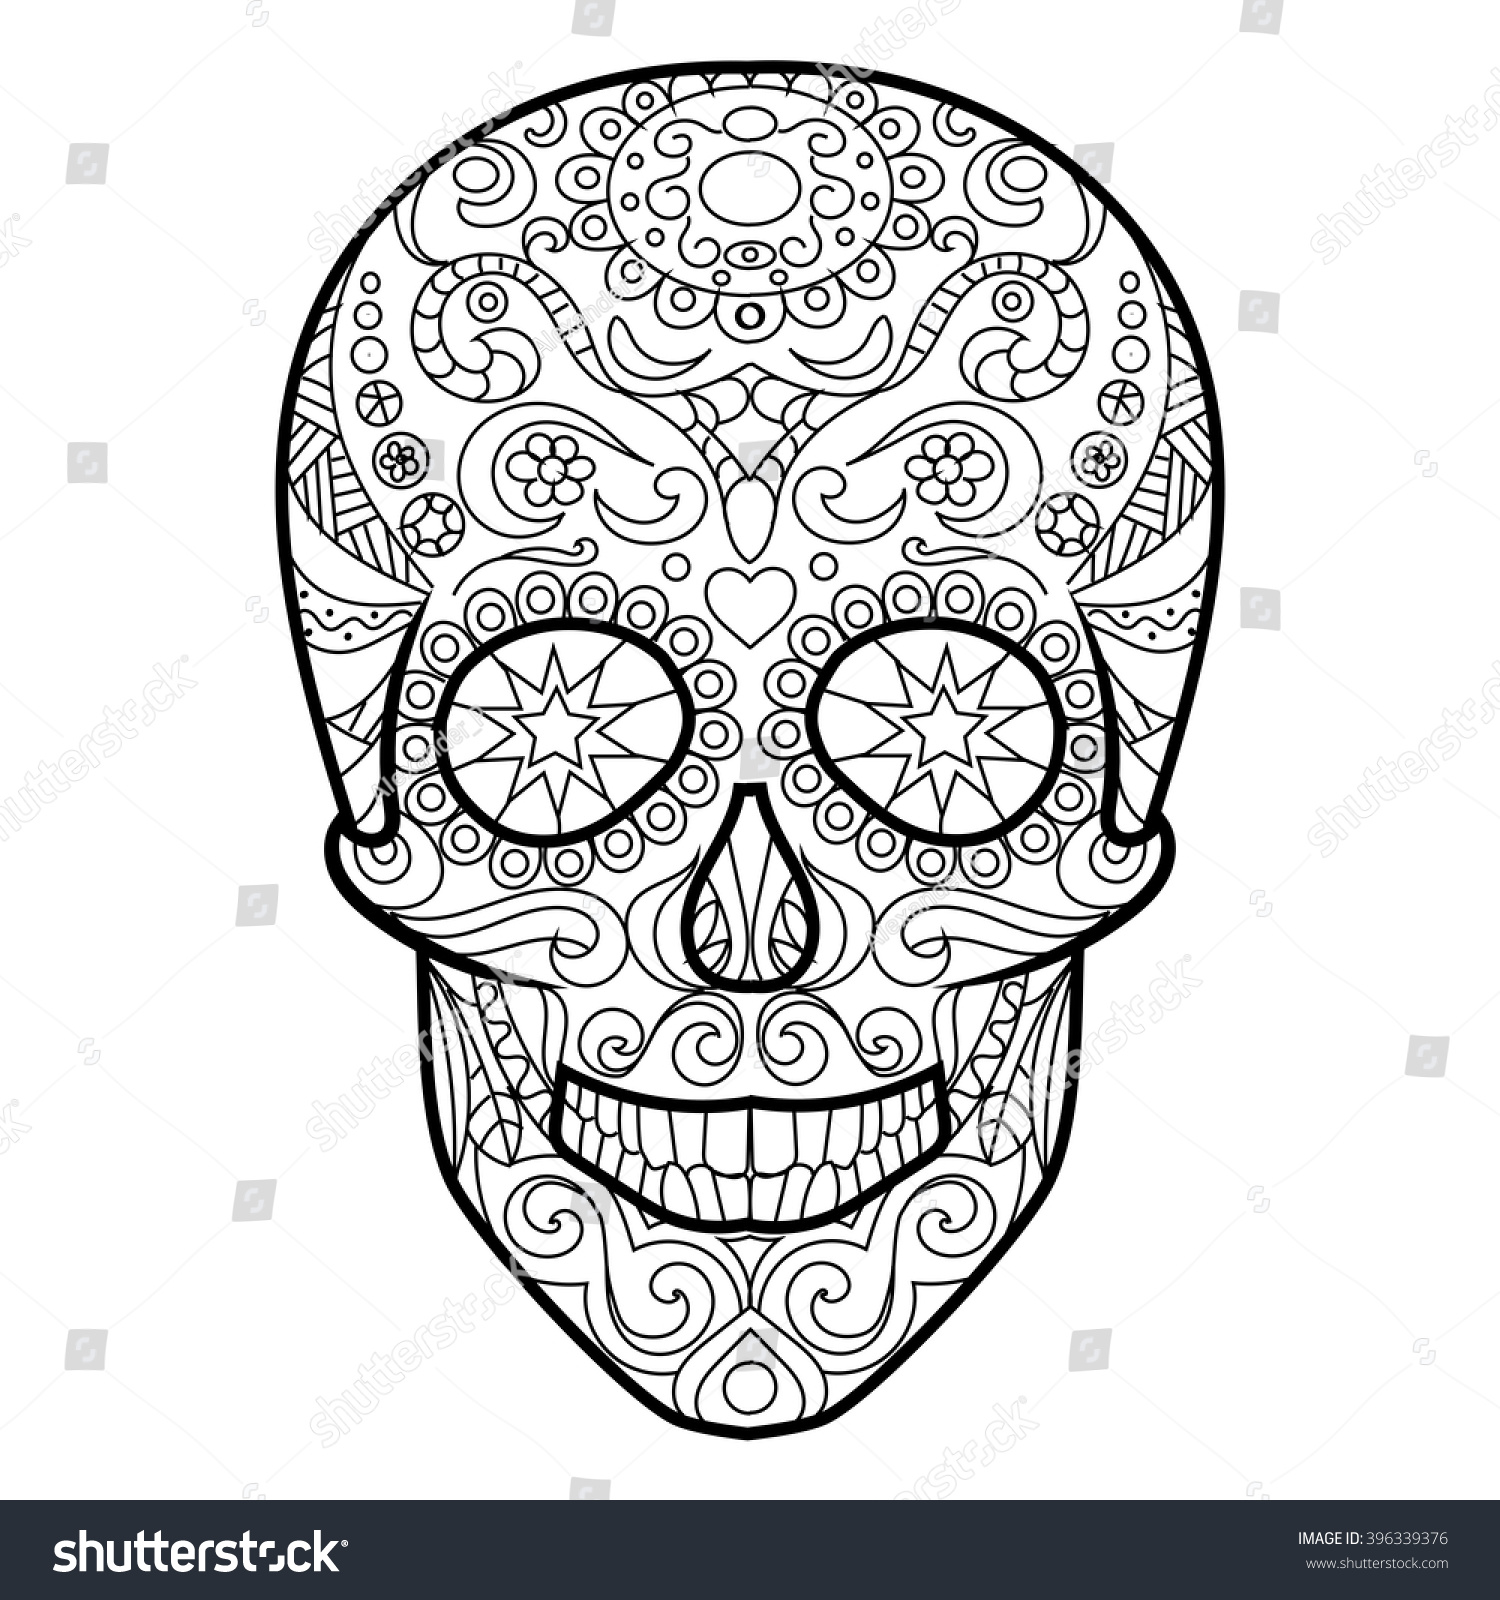 Hunan Skull Coloring Book Adults Vector Stock Vector